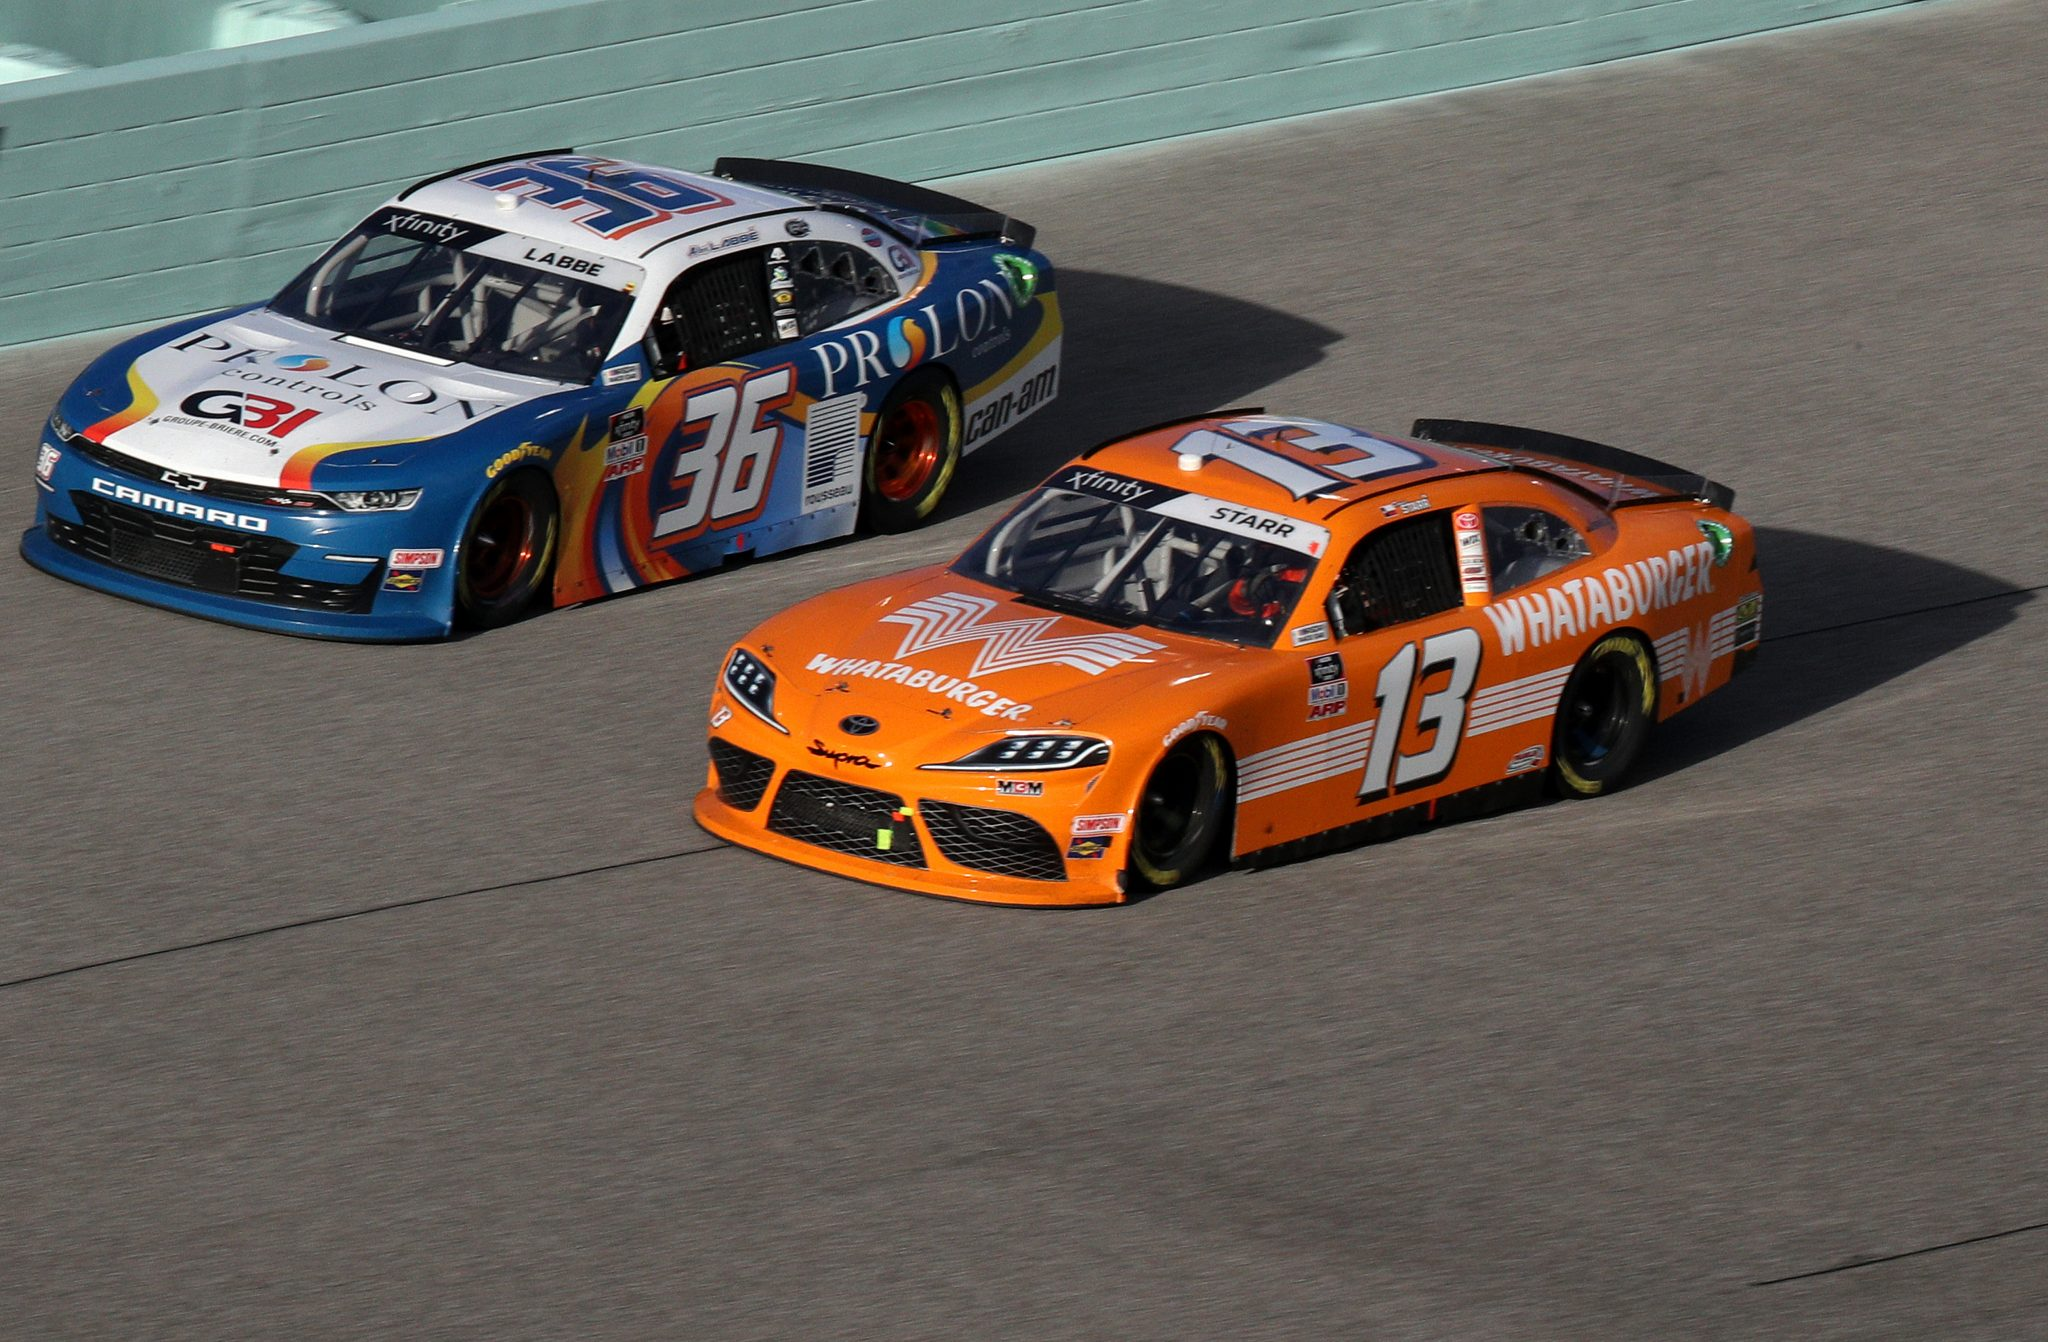 HOMESTEAD, FLORIDA - FEBRUARY 27: Alex Labbe, driver of the #36 Prolon/rousseau/Silver Wax Chevrolet, and David Starr, driver of the #13 Ford, race during the NASCAR Xfinity Series Contender Boats 250 at Homestead-Miami Speedway on February 27, 2021 in Homestead, Florida. (Photo by Sean Gardner/Getty Images) | Getty Images